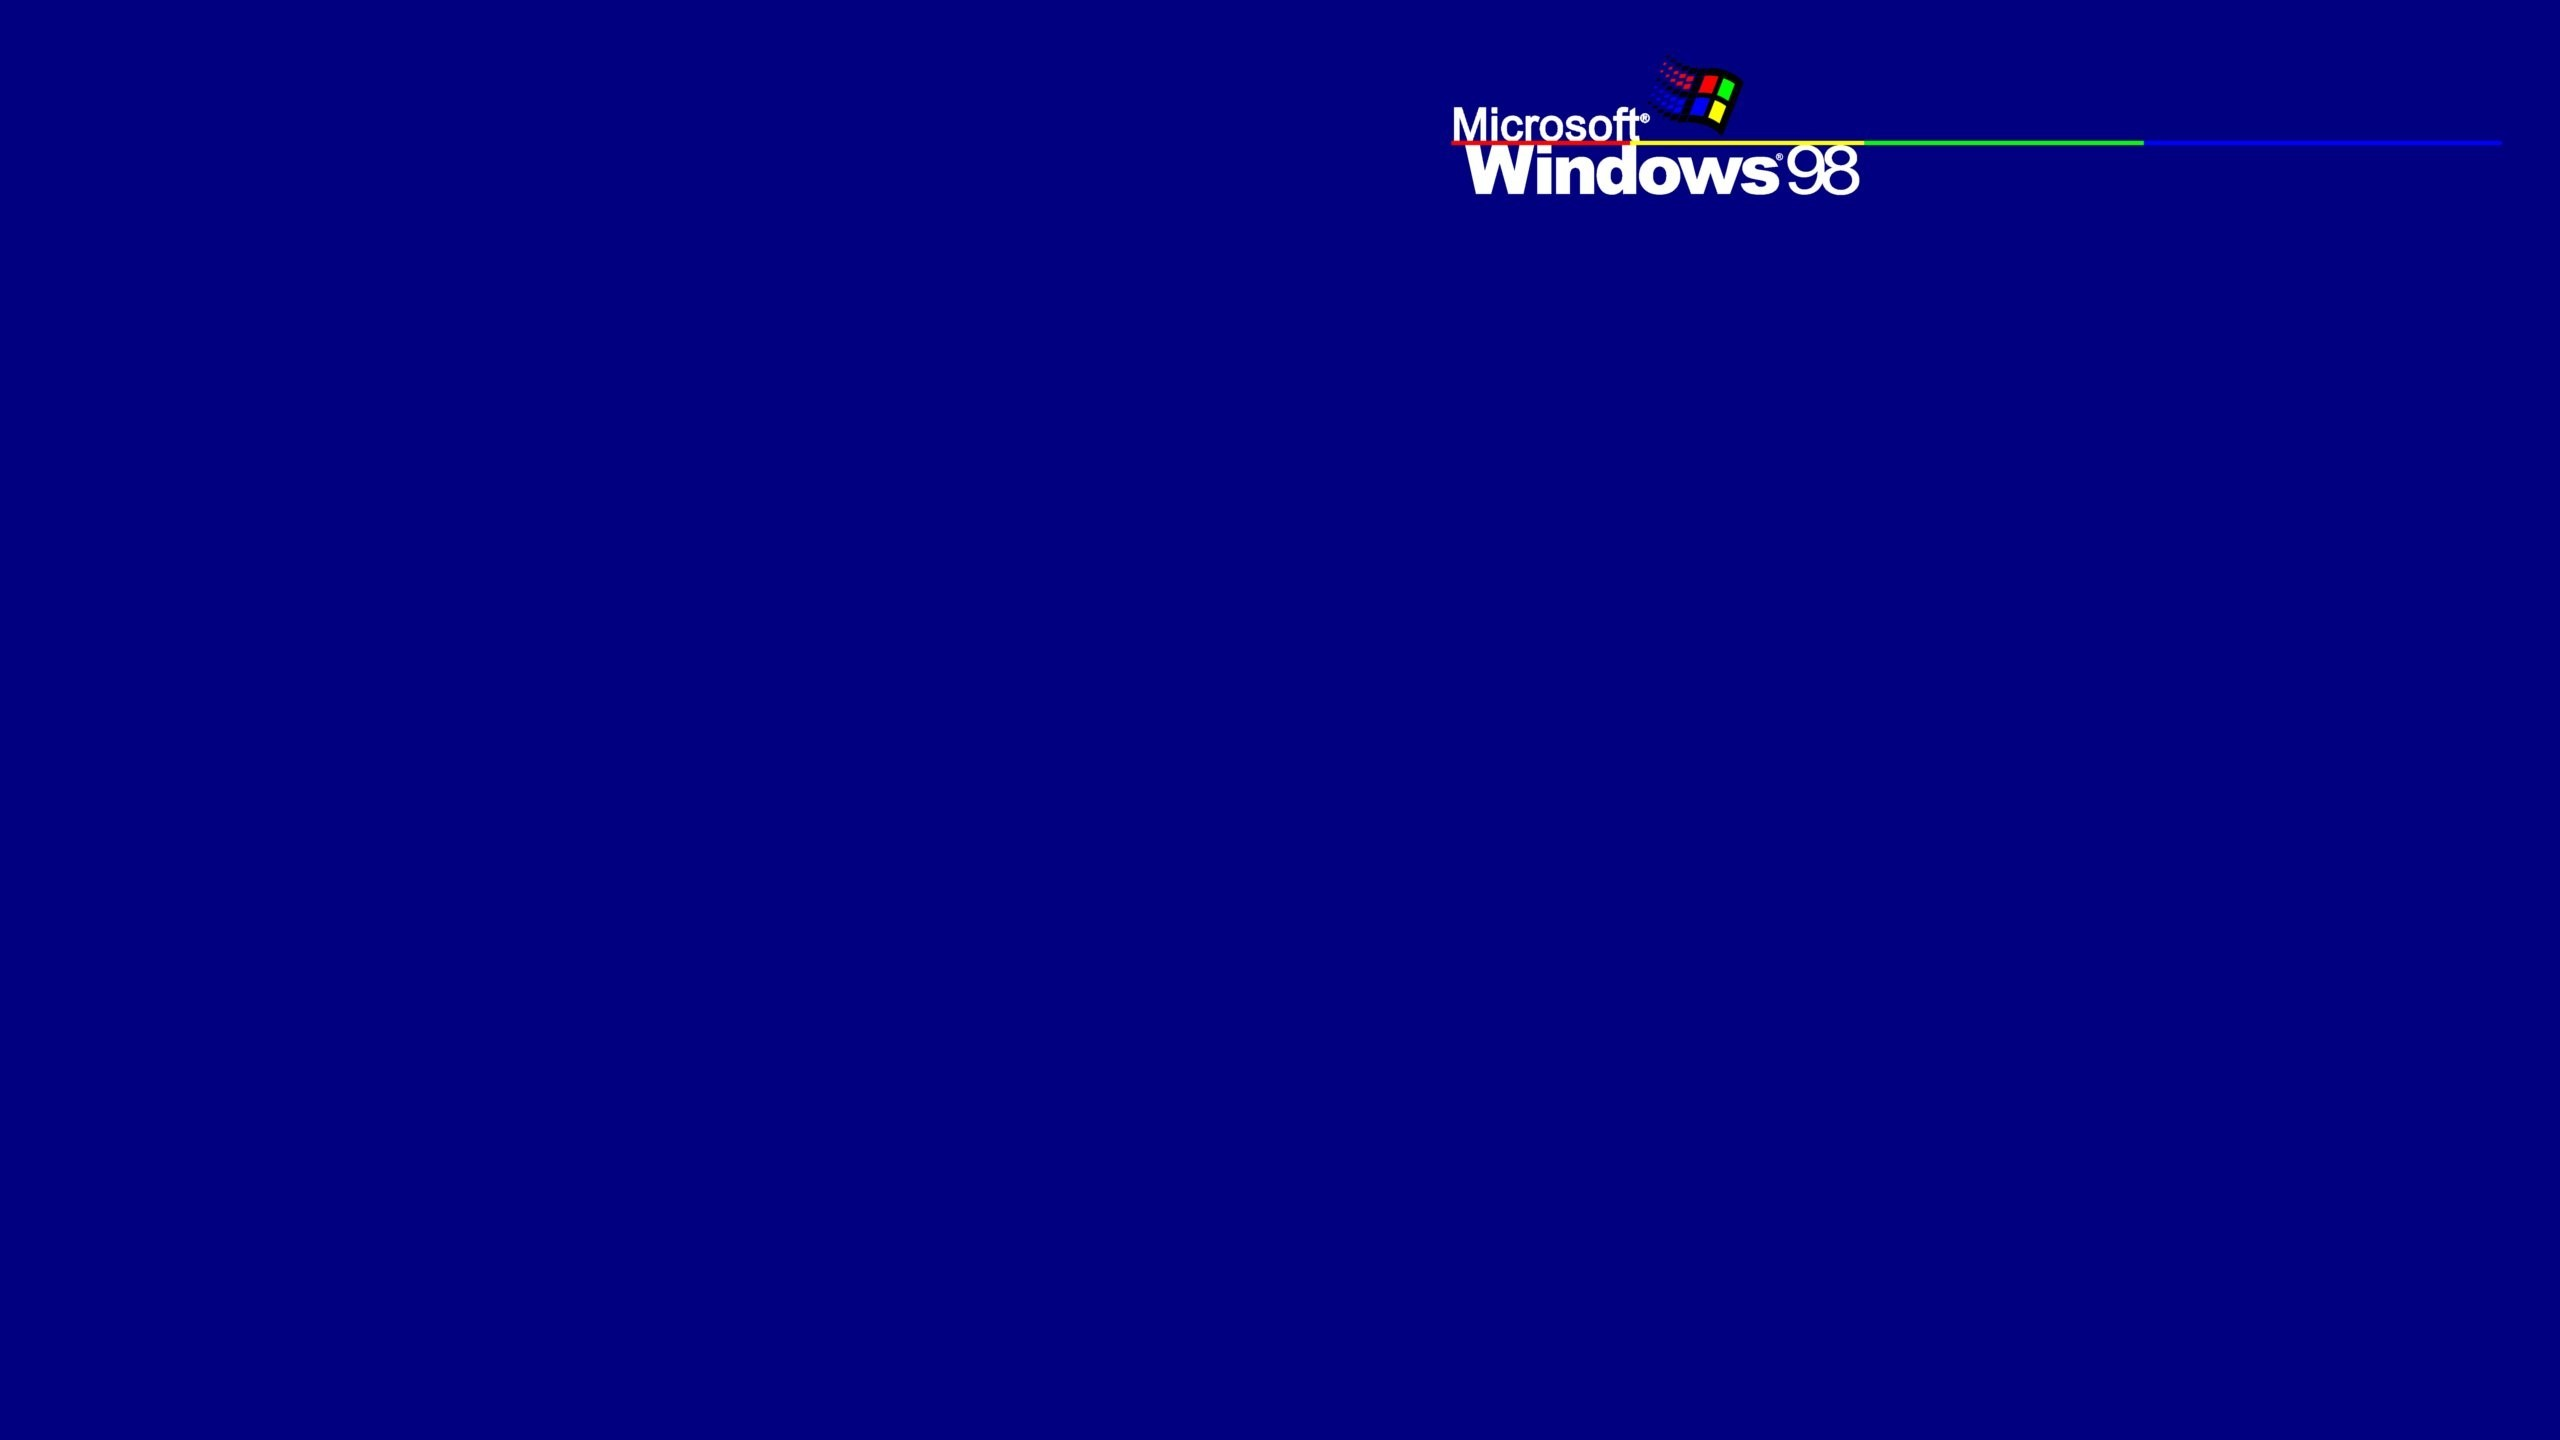 Res: 2560x1440, windows 98 wallpaper #70813